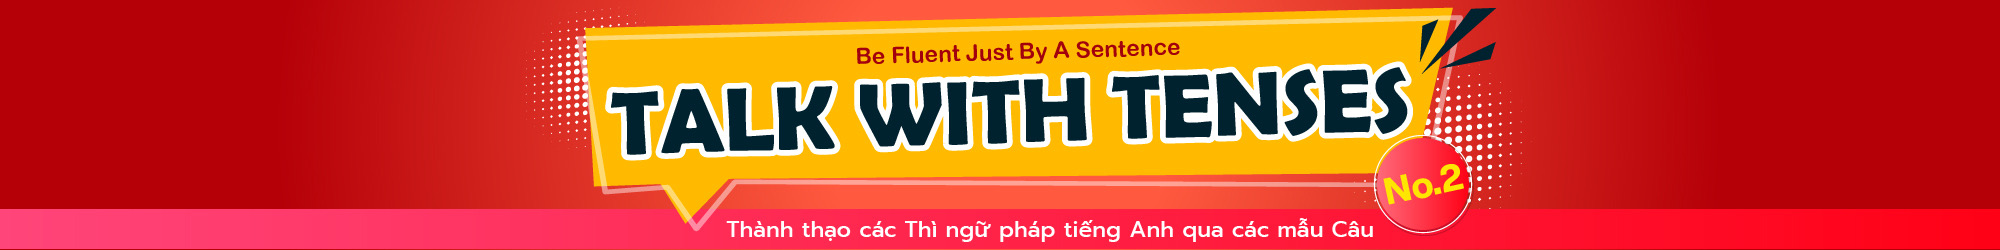 Talk with Tenses (No.2) banner